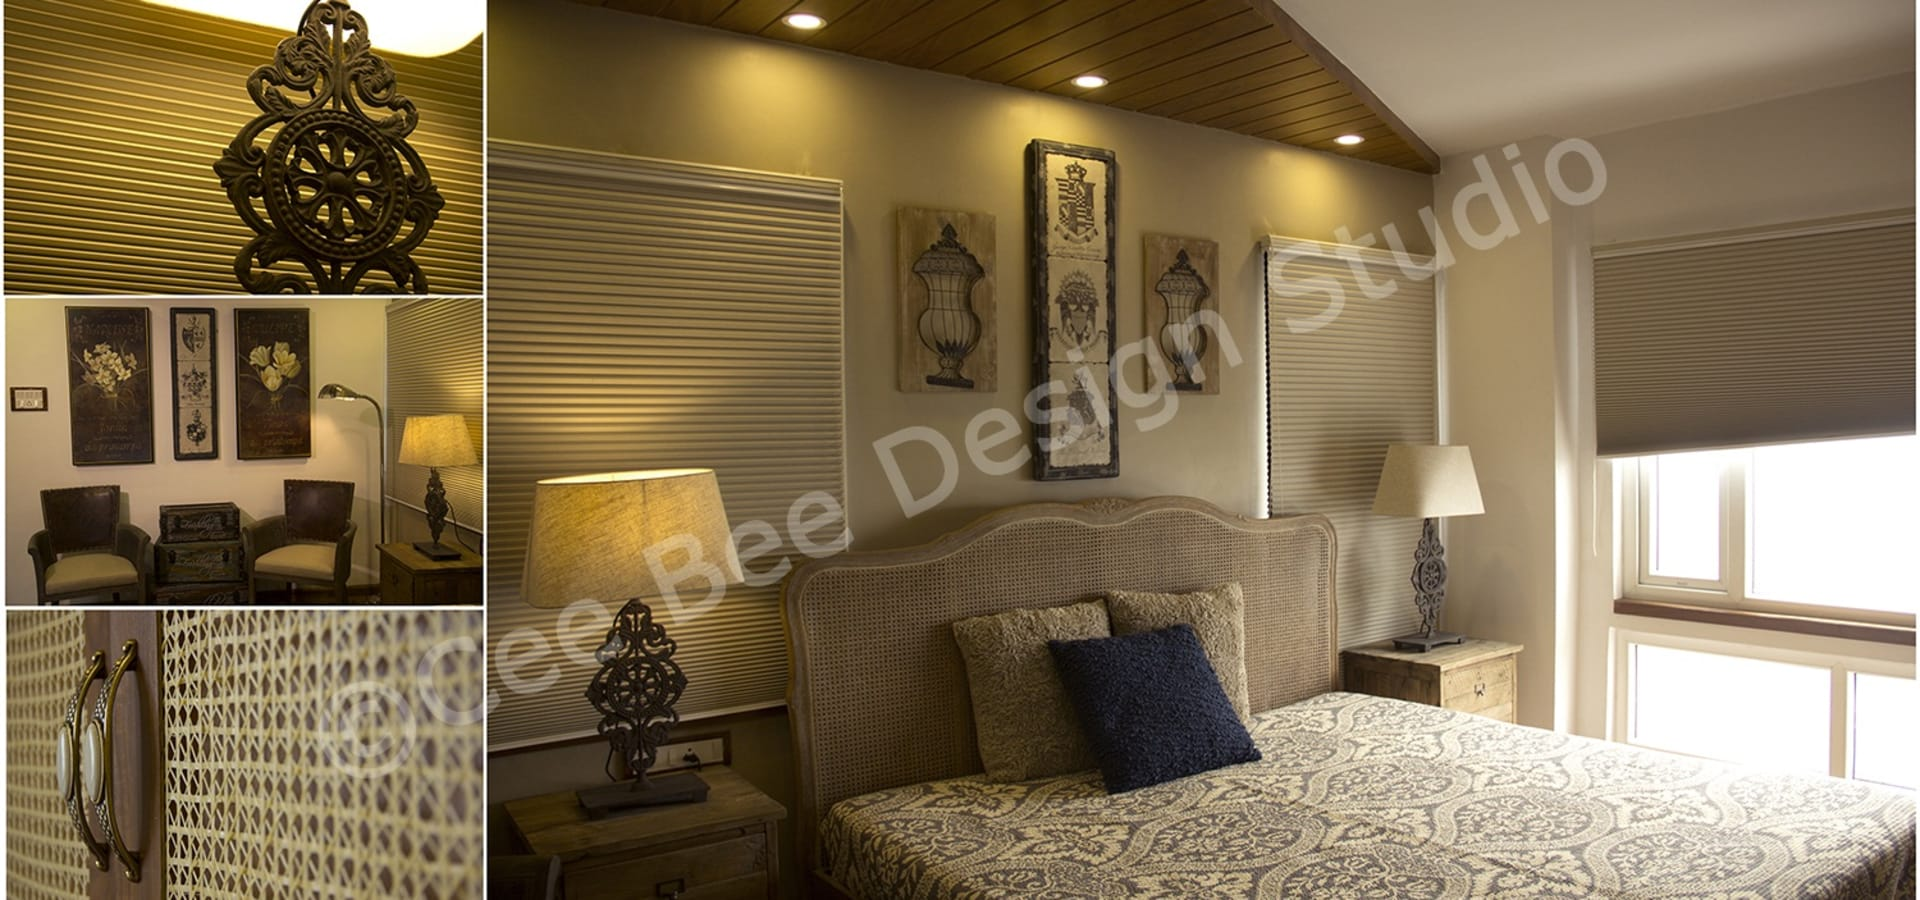 Cee Bee Design Studio